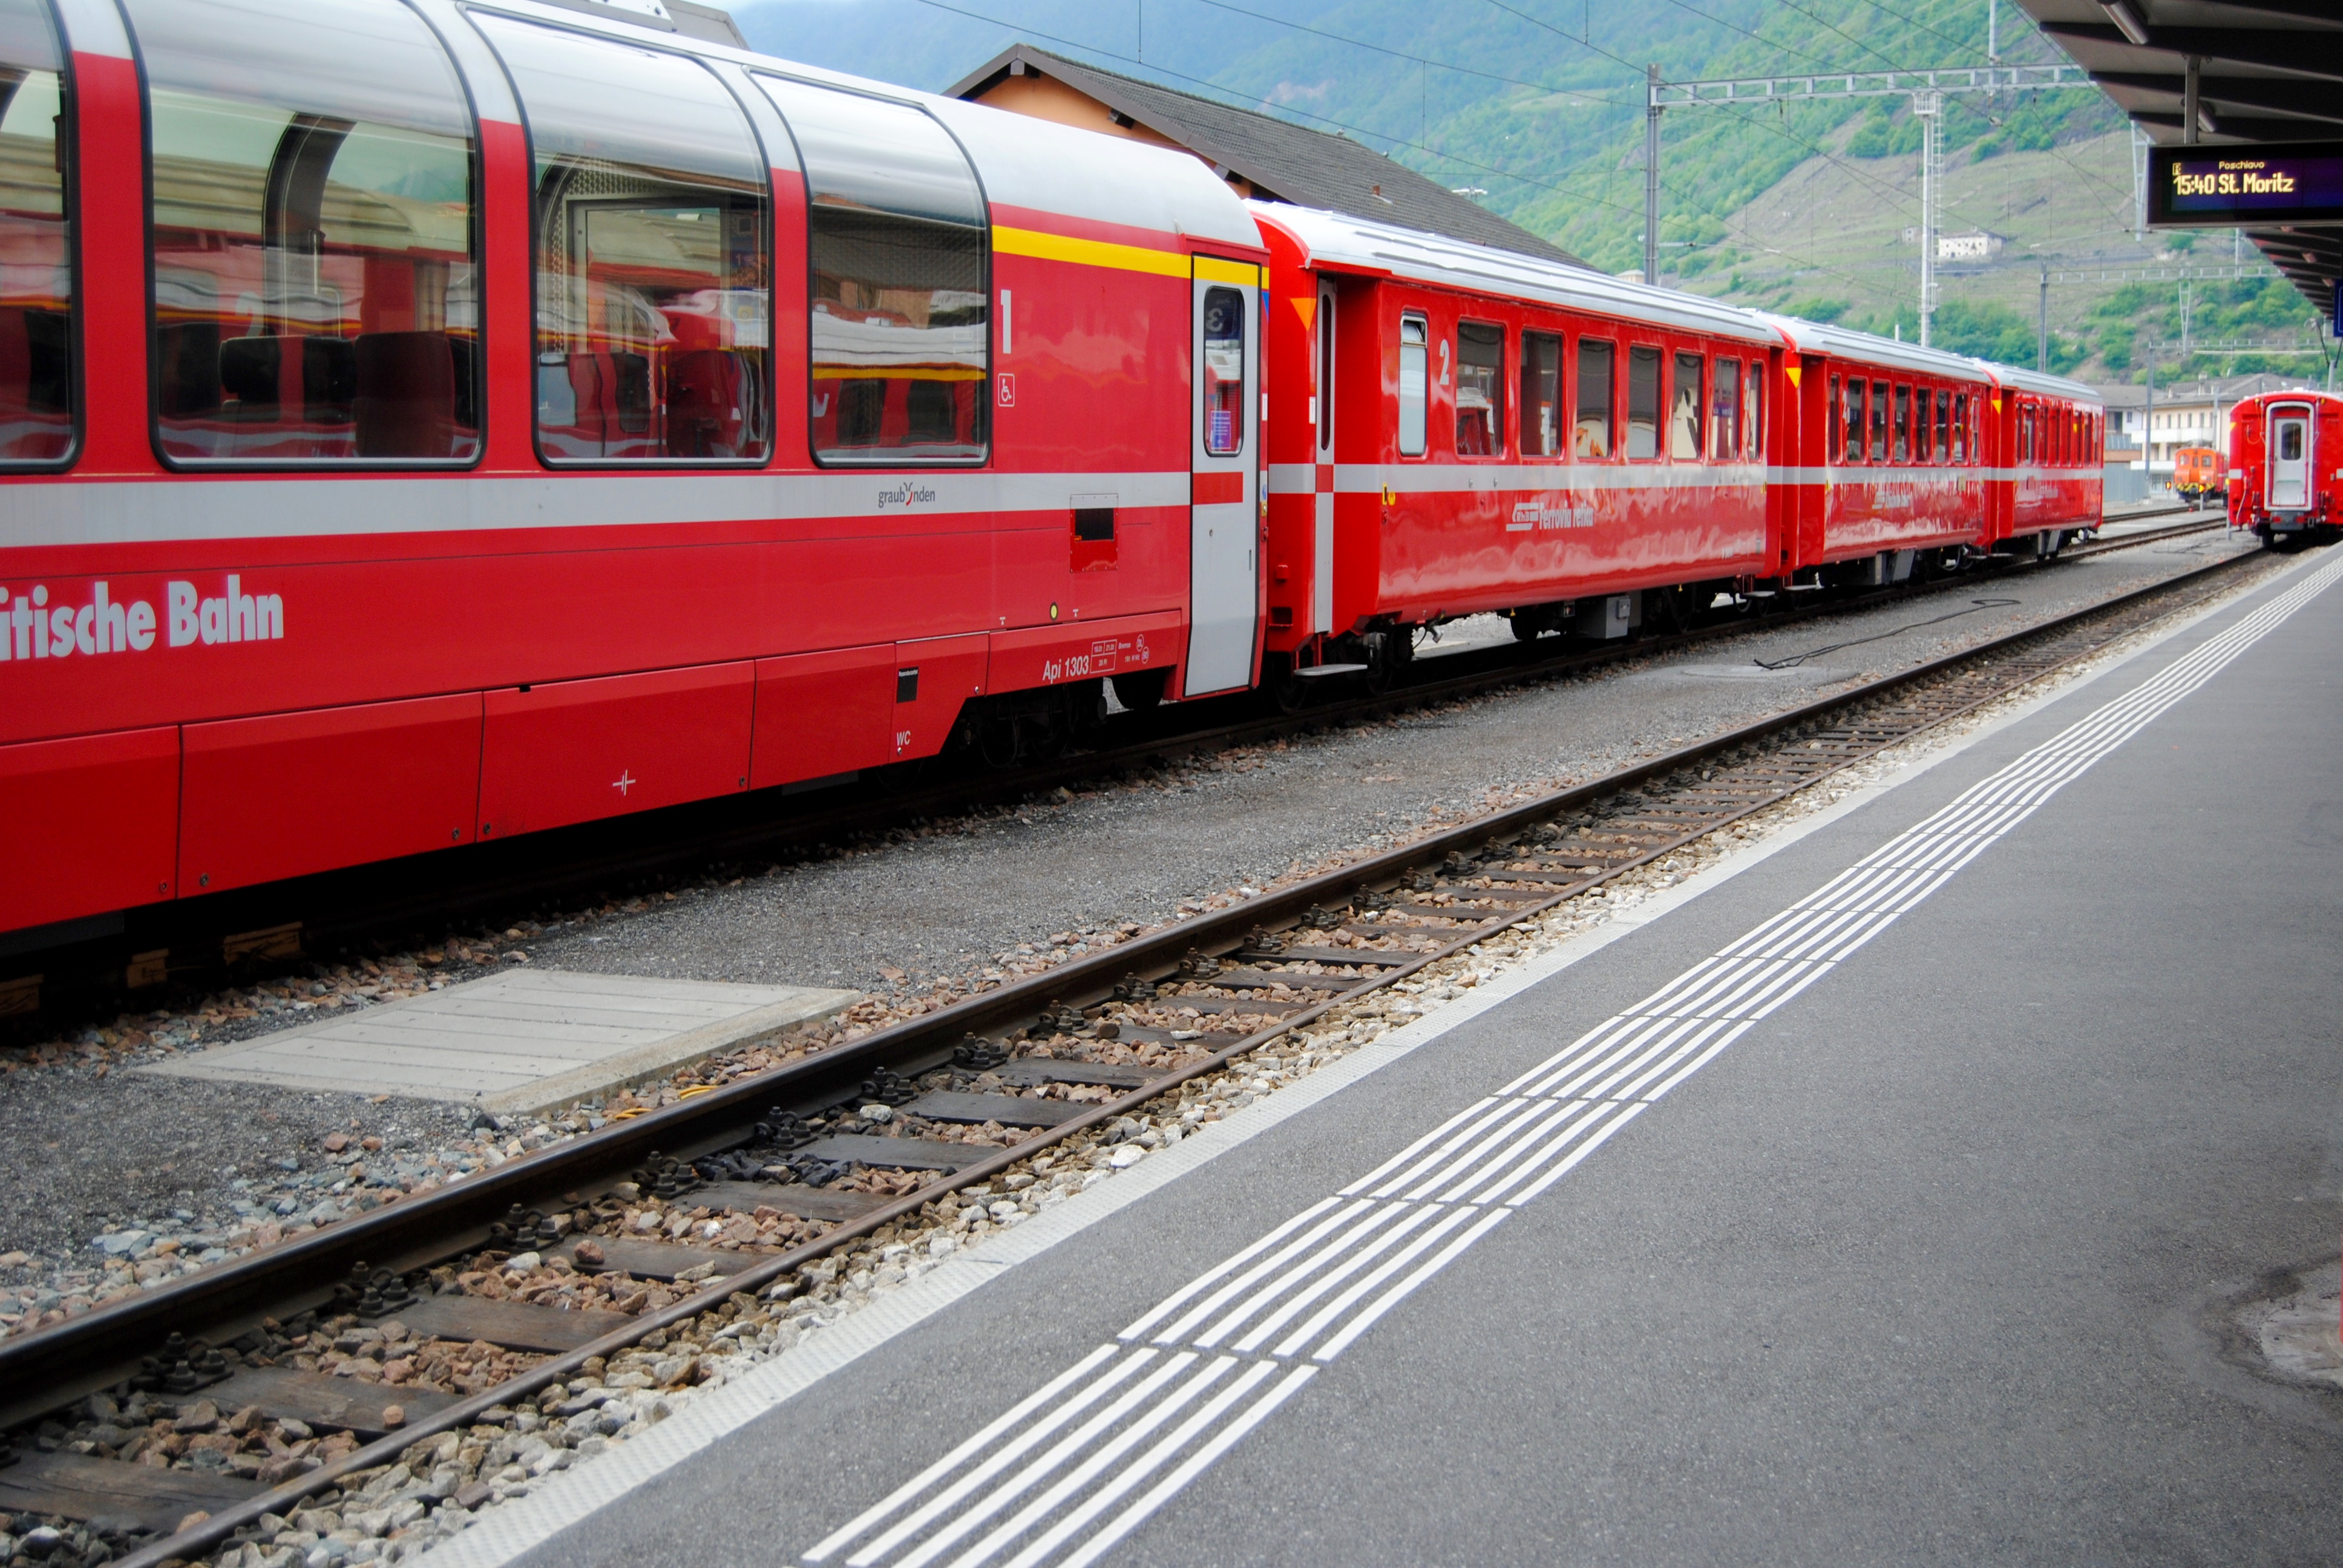 The Bernina train.